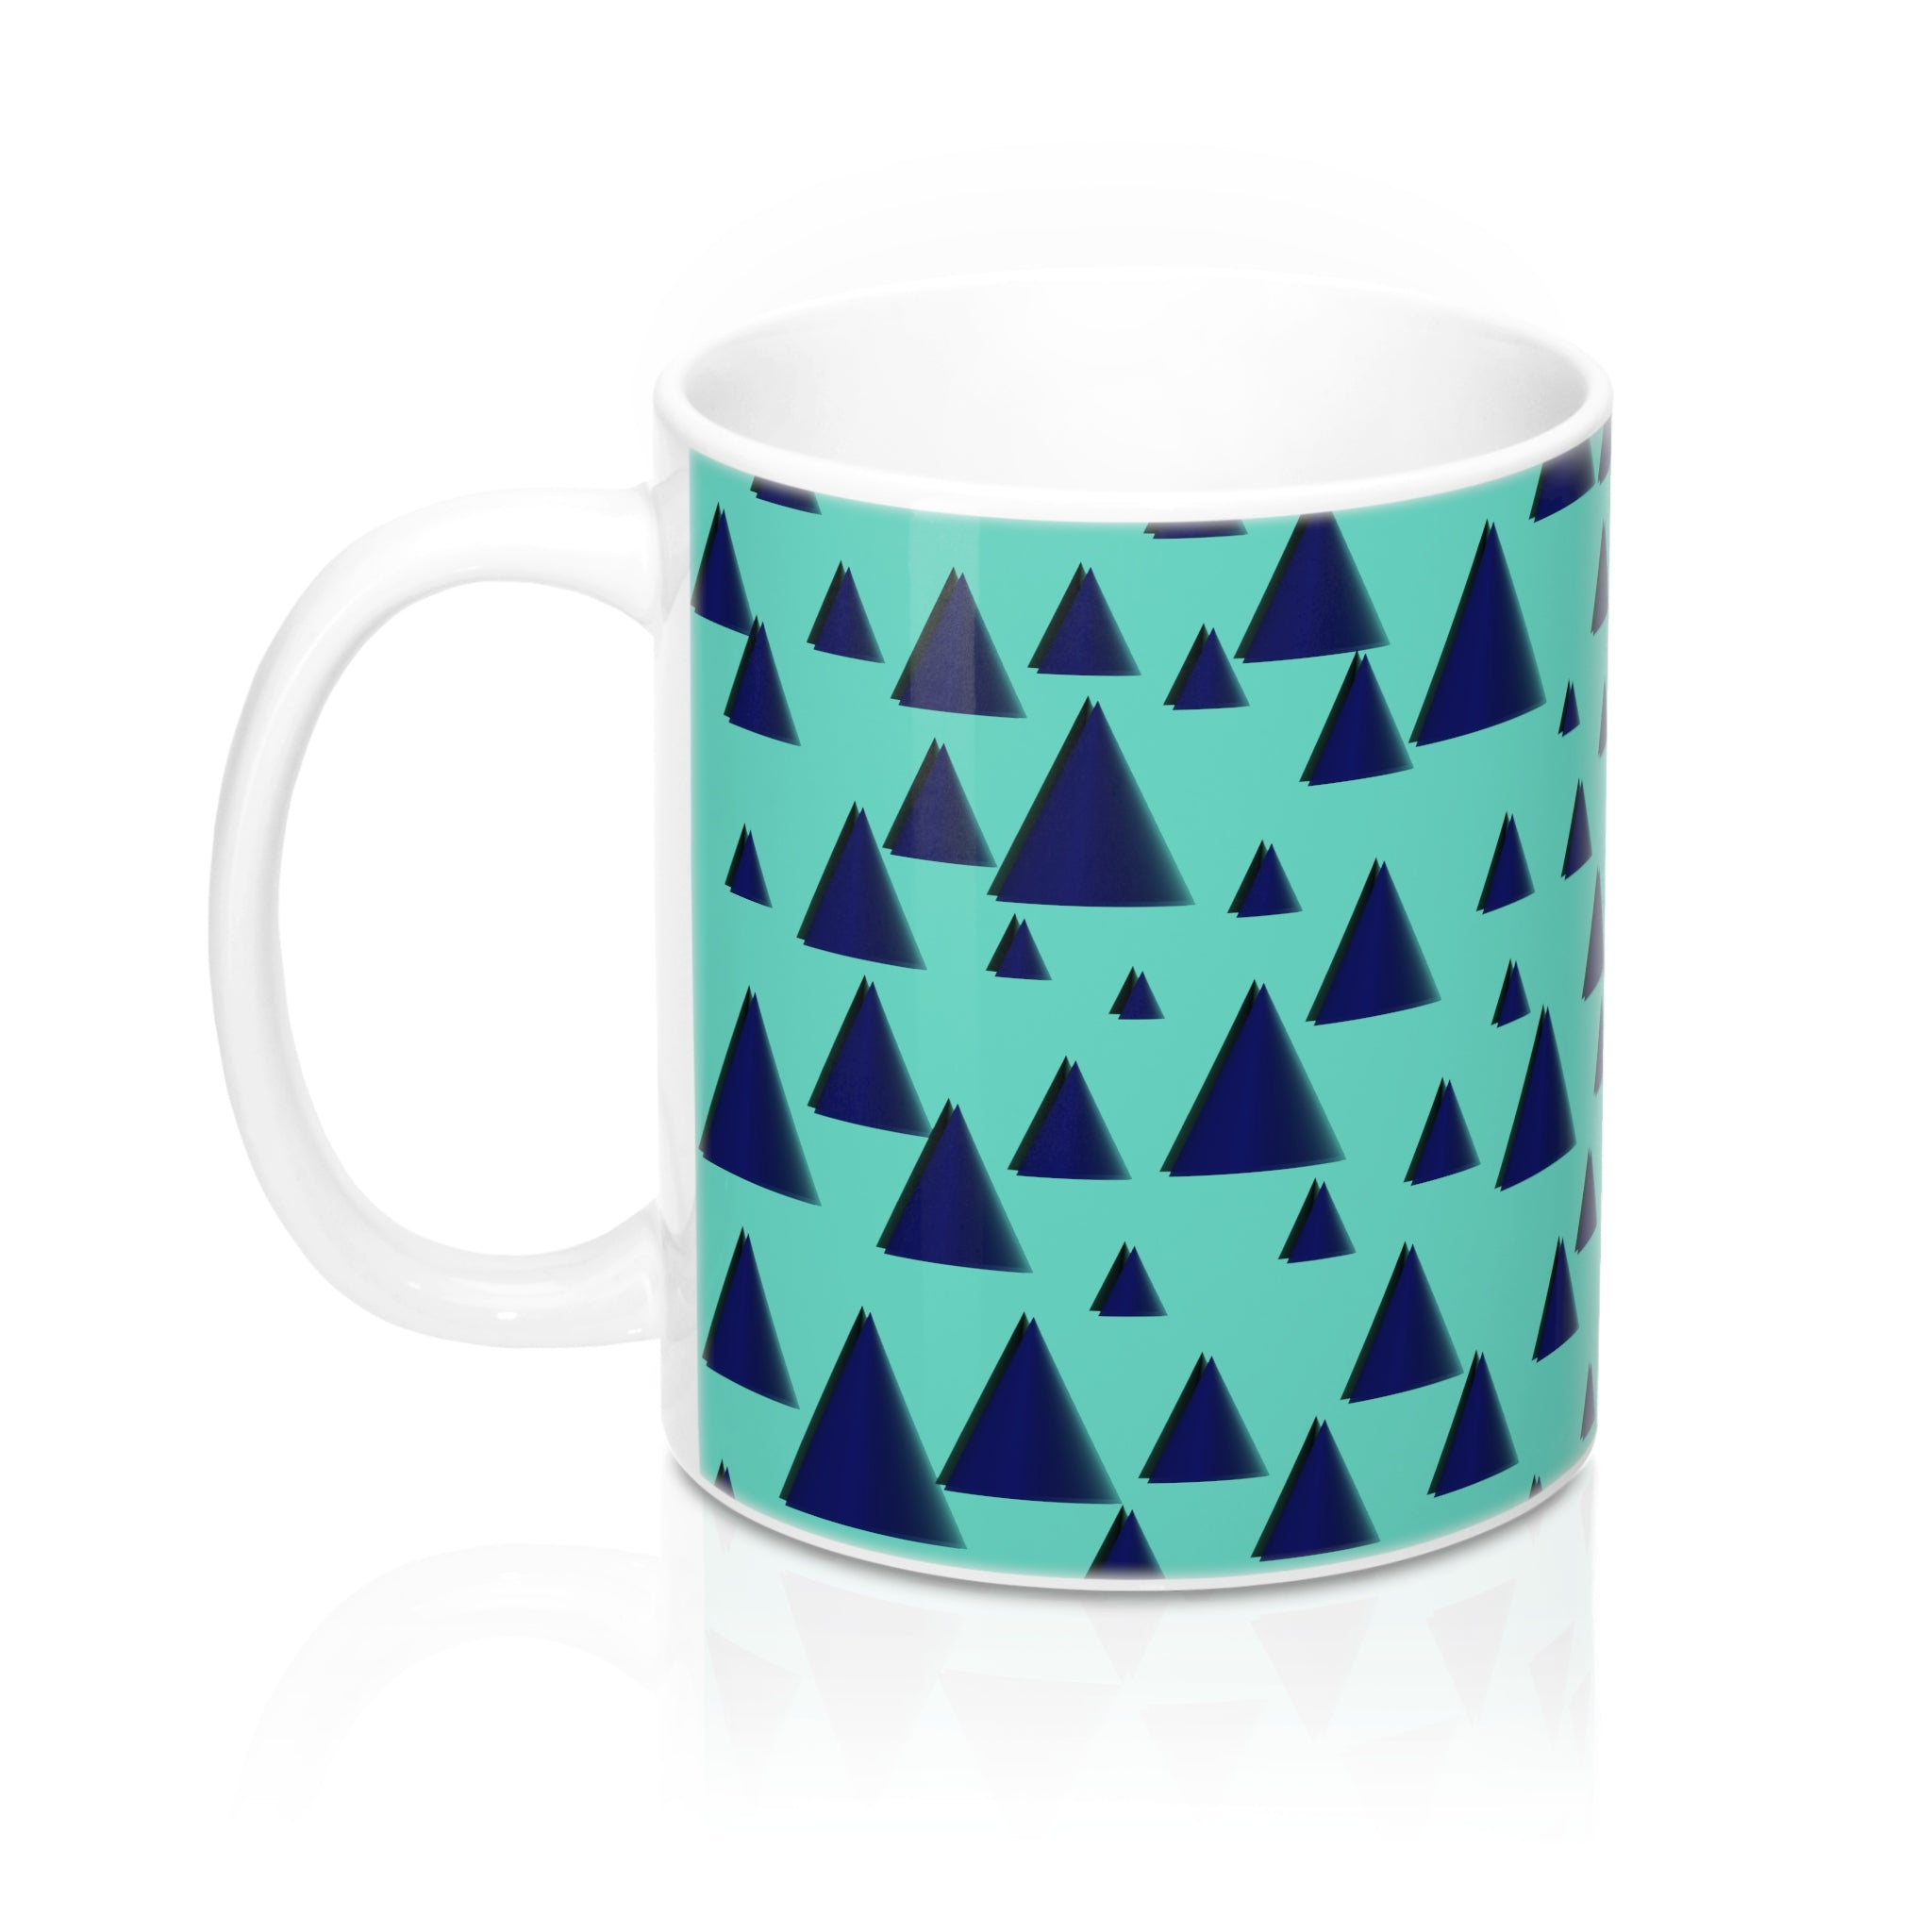 Mug - Winter Woods